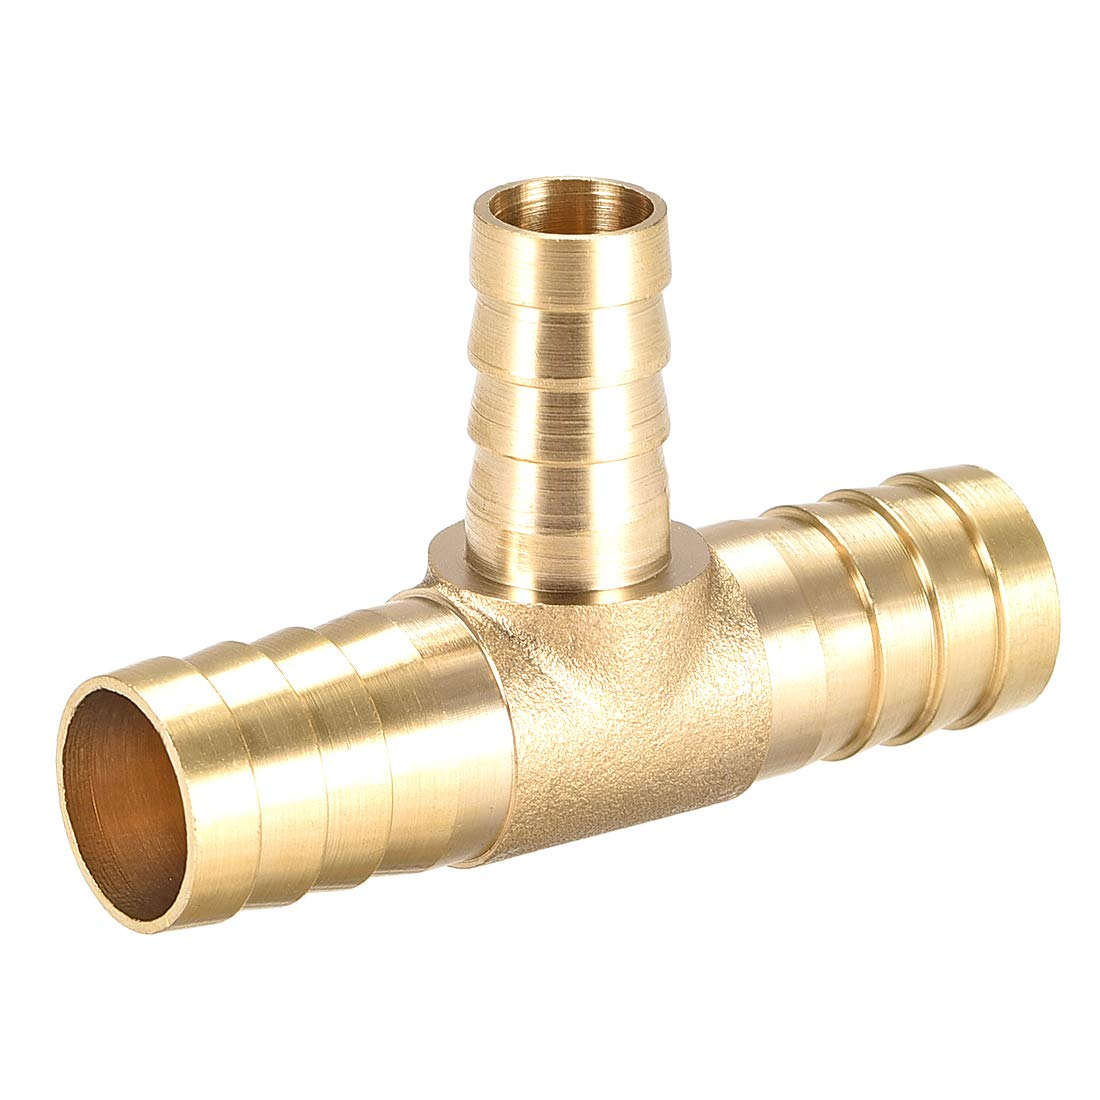 uxcell 10mm X 8mm X 10mm Brass Hose Reducer Barb Fitting Tee T-Shaped 3 Way Barbed Connector Air Water Fuel Gas